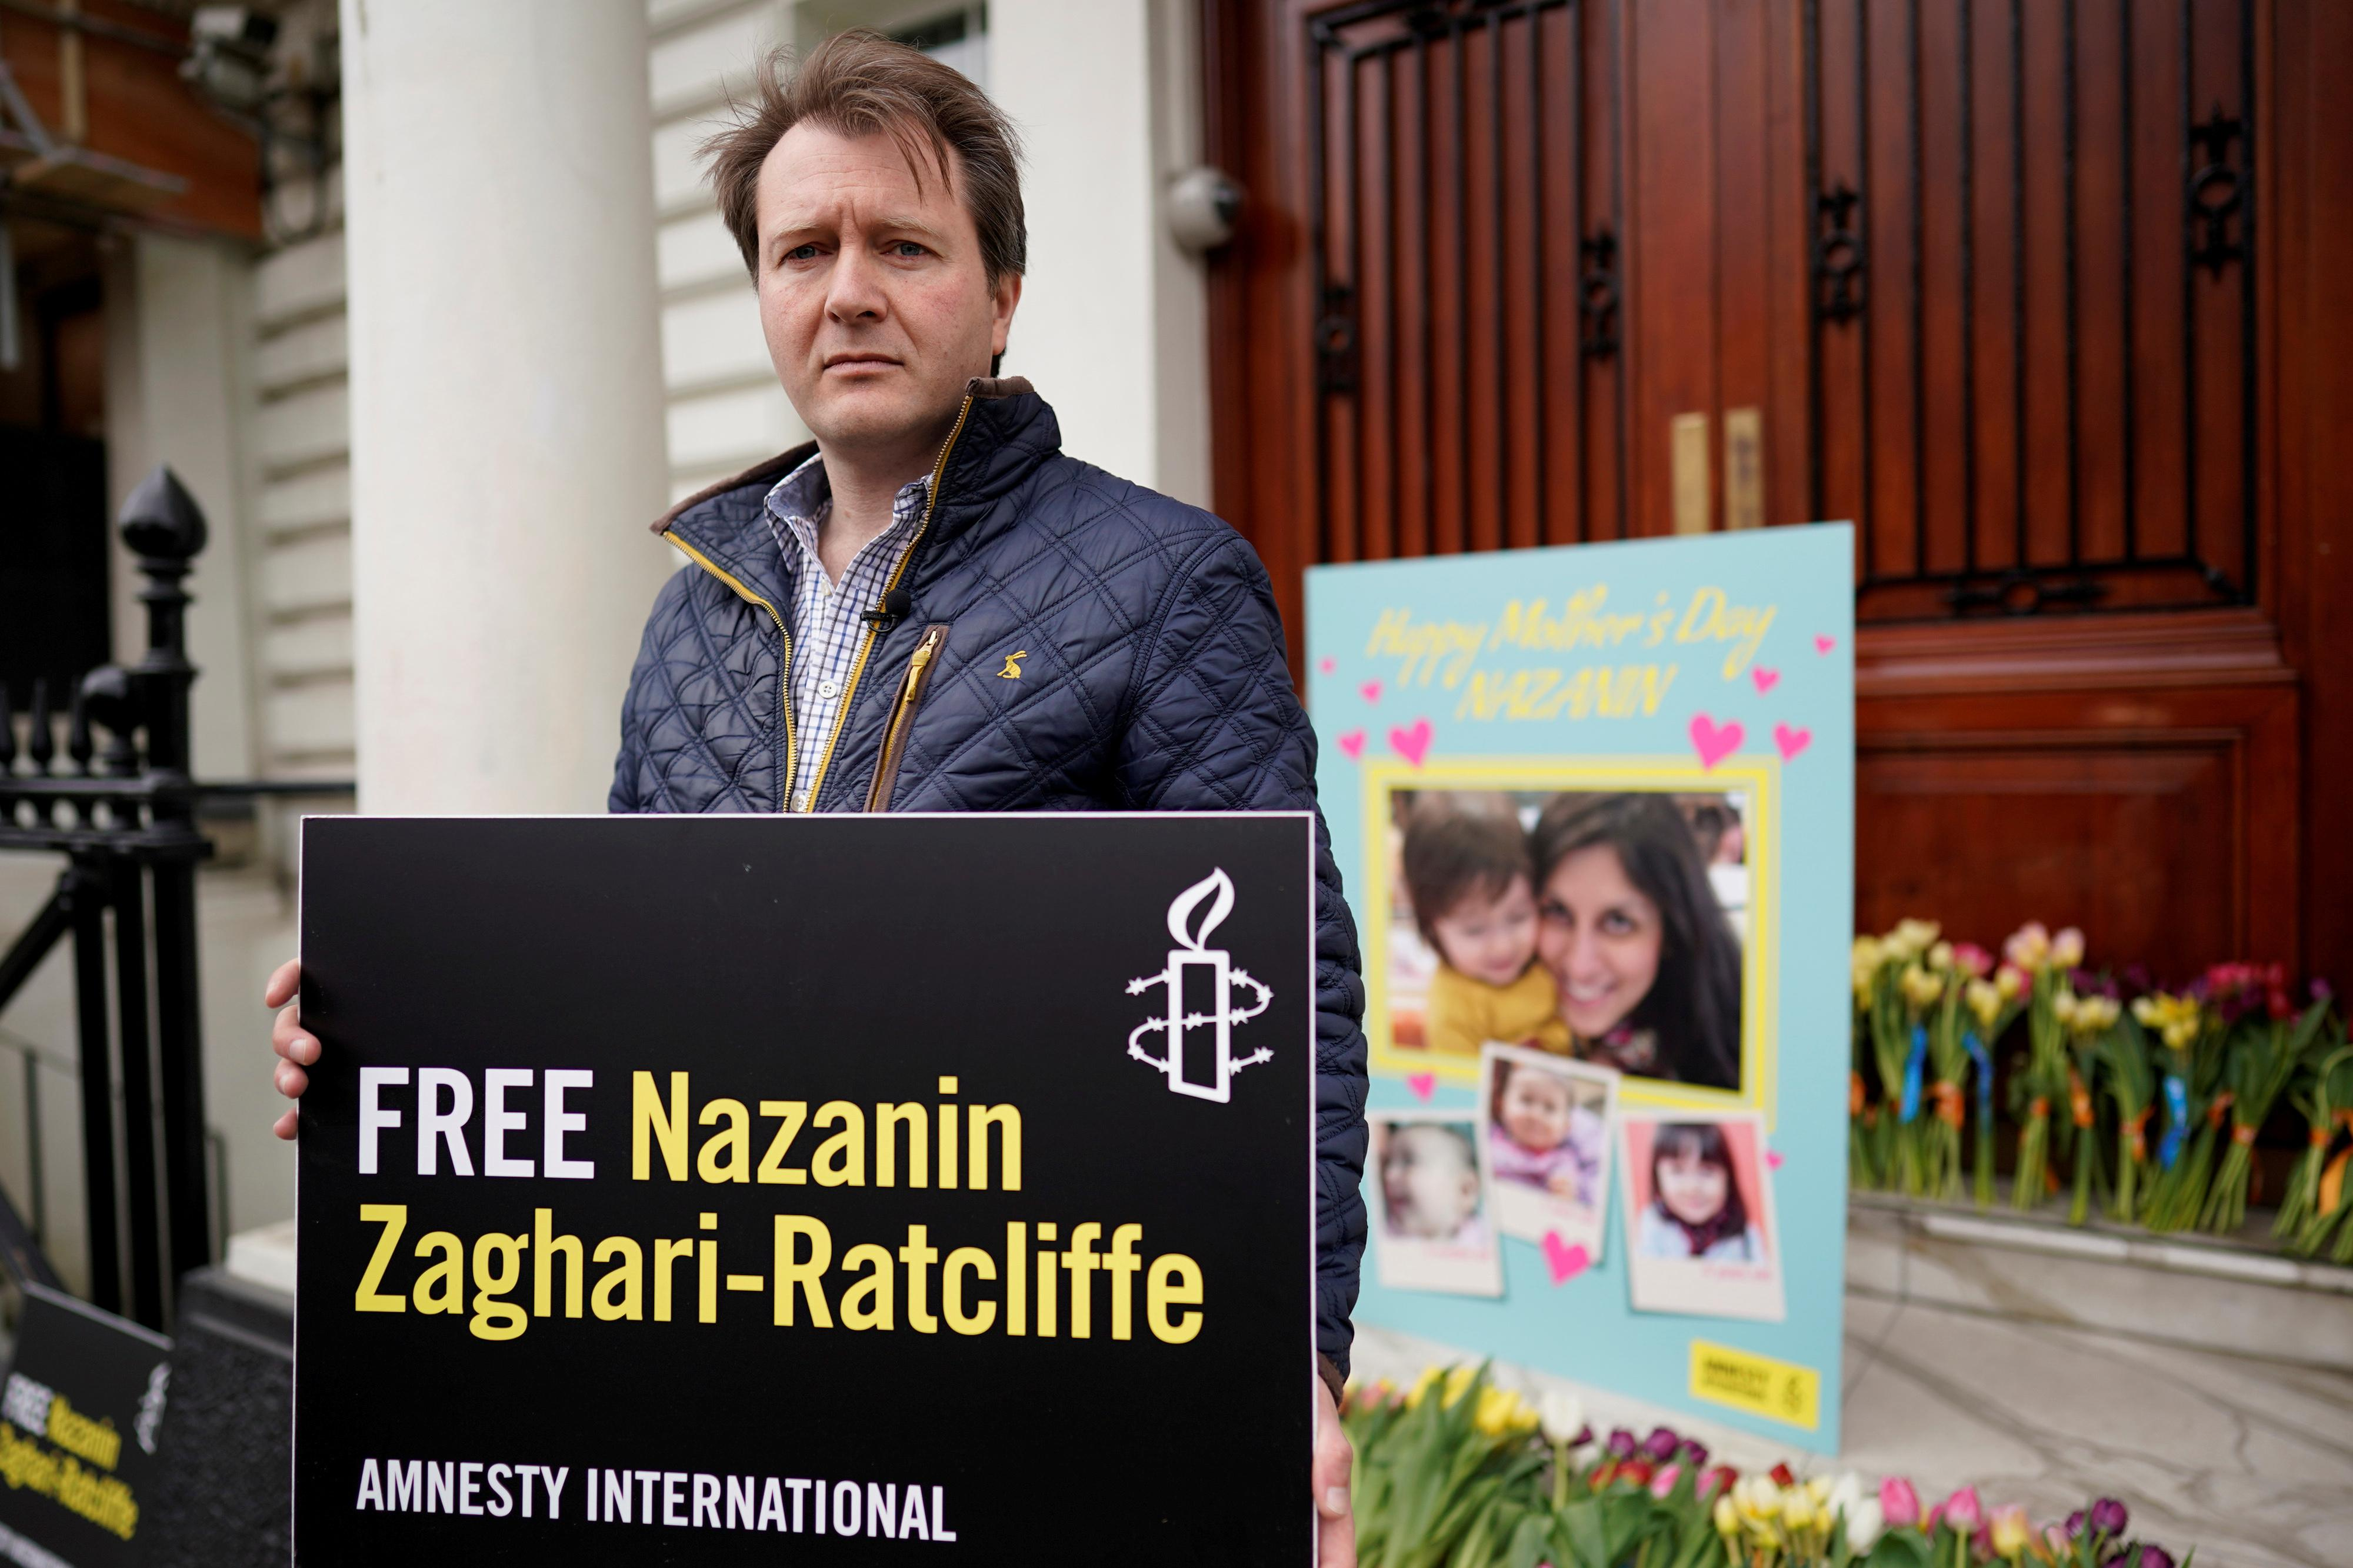 British-Iranian aid worker moved back to jail from hospital ward: husband